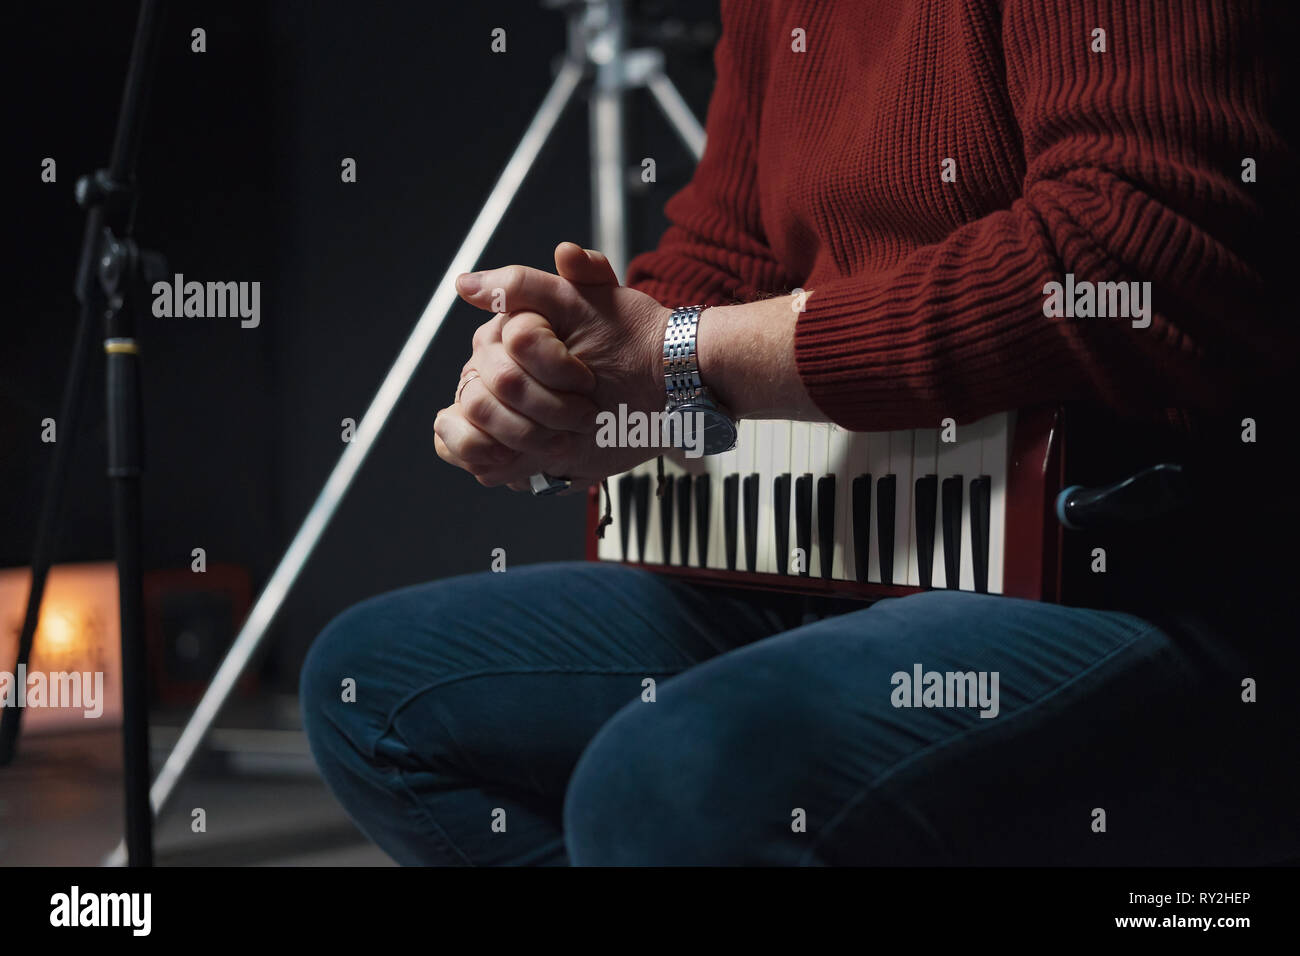 Wind Instrument Stock Photos & Wind Instrument Stock Images